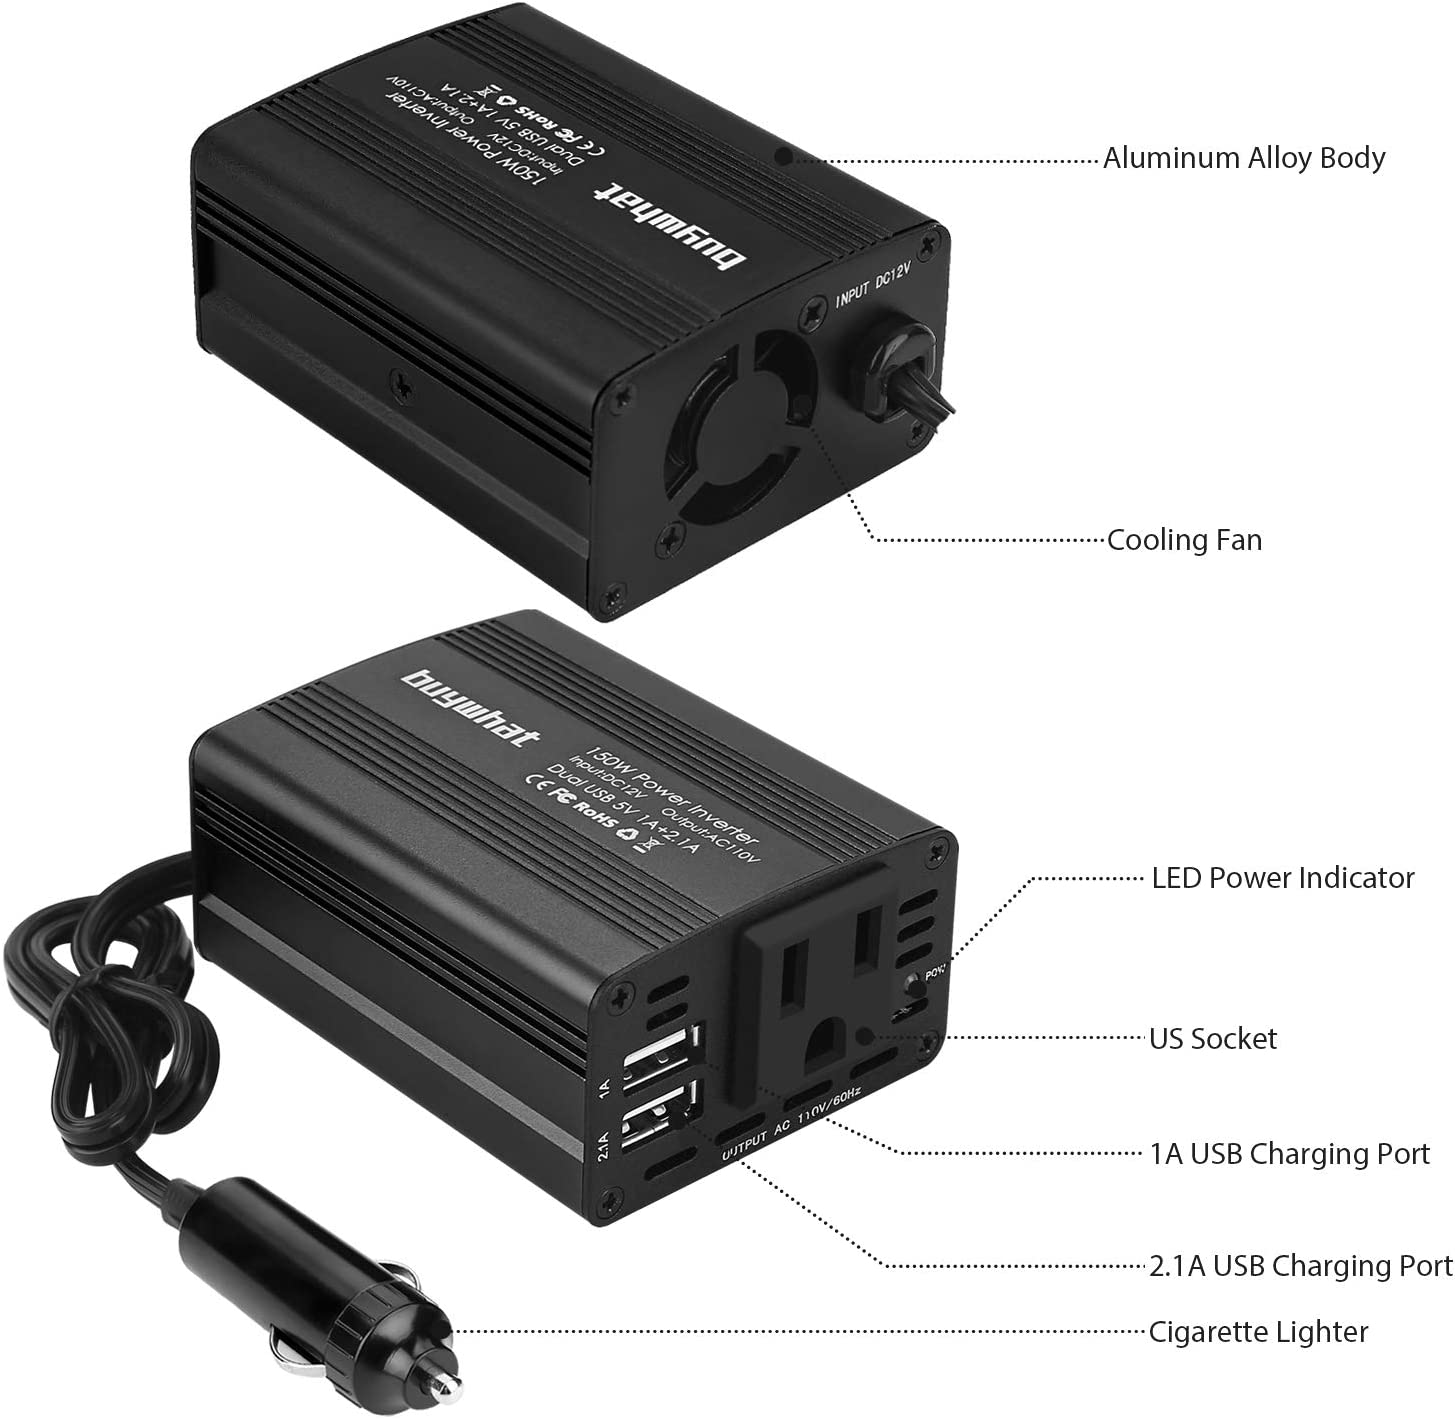 Buywhat 150W Power Inverter DC 12V to 110V AC Converter Car Plug Adapter Outlet Charger for Laptop Computer